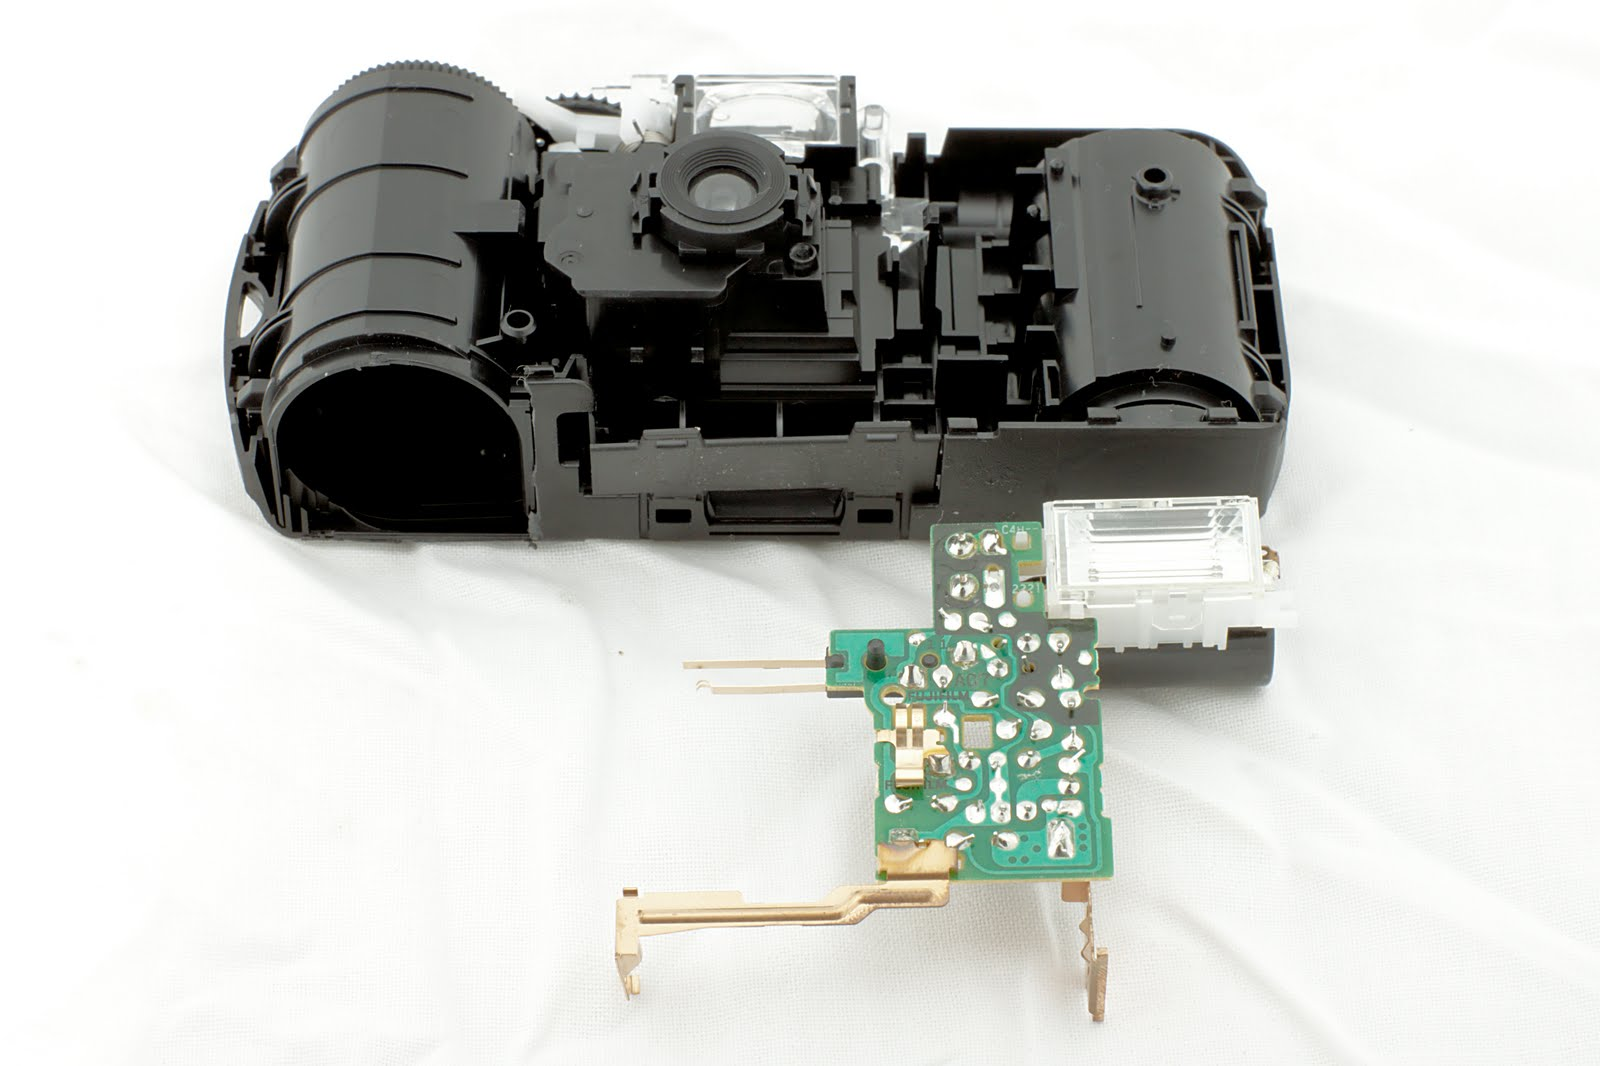 Highly Entropic: Taking apart a disposable camera